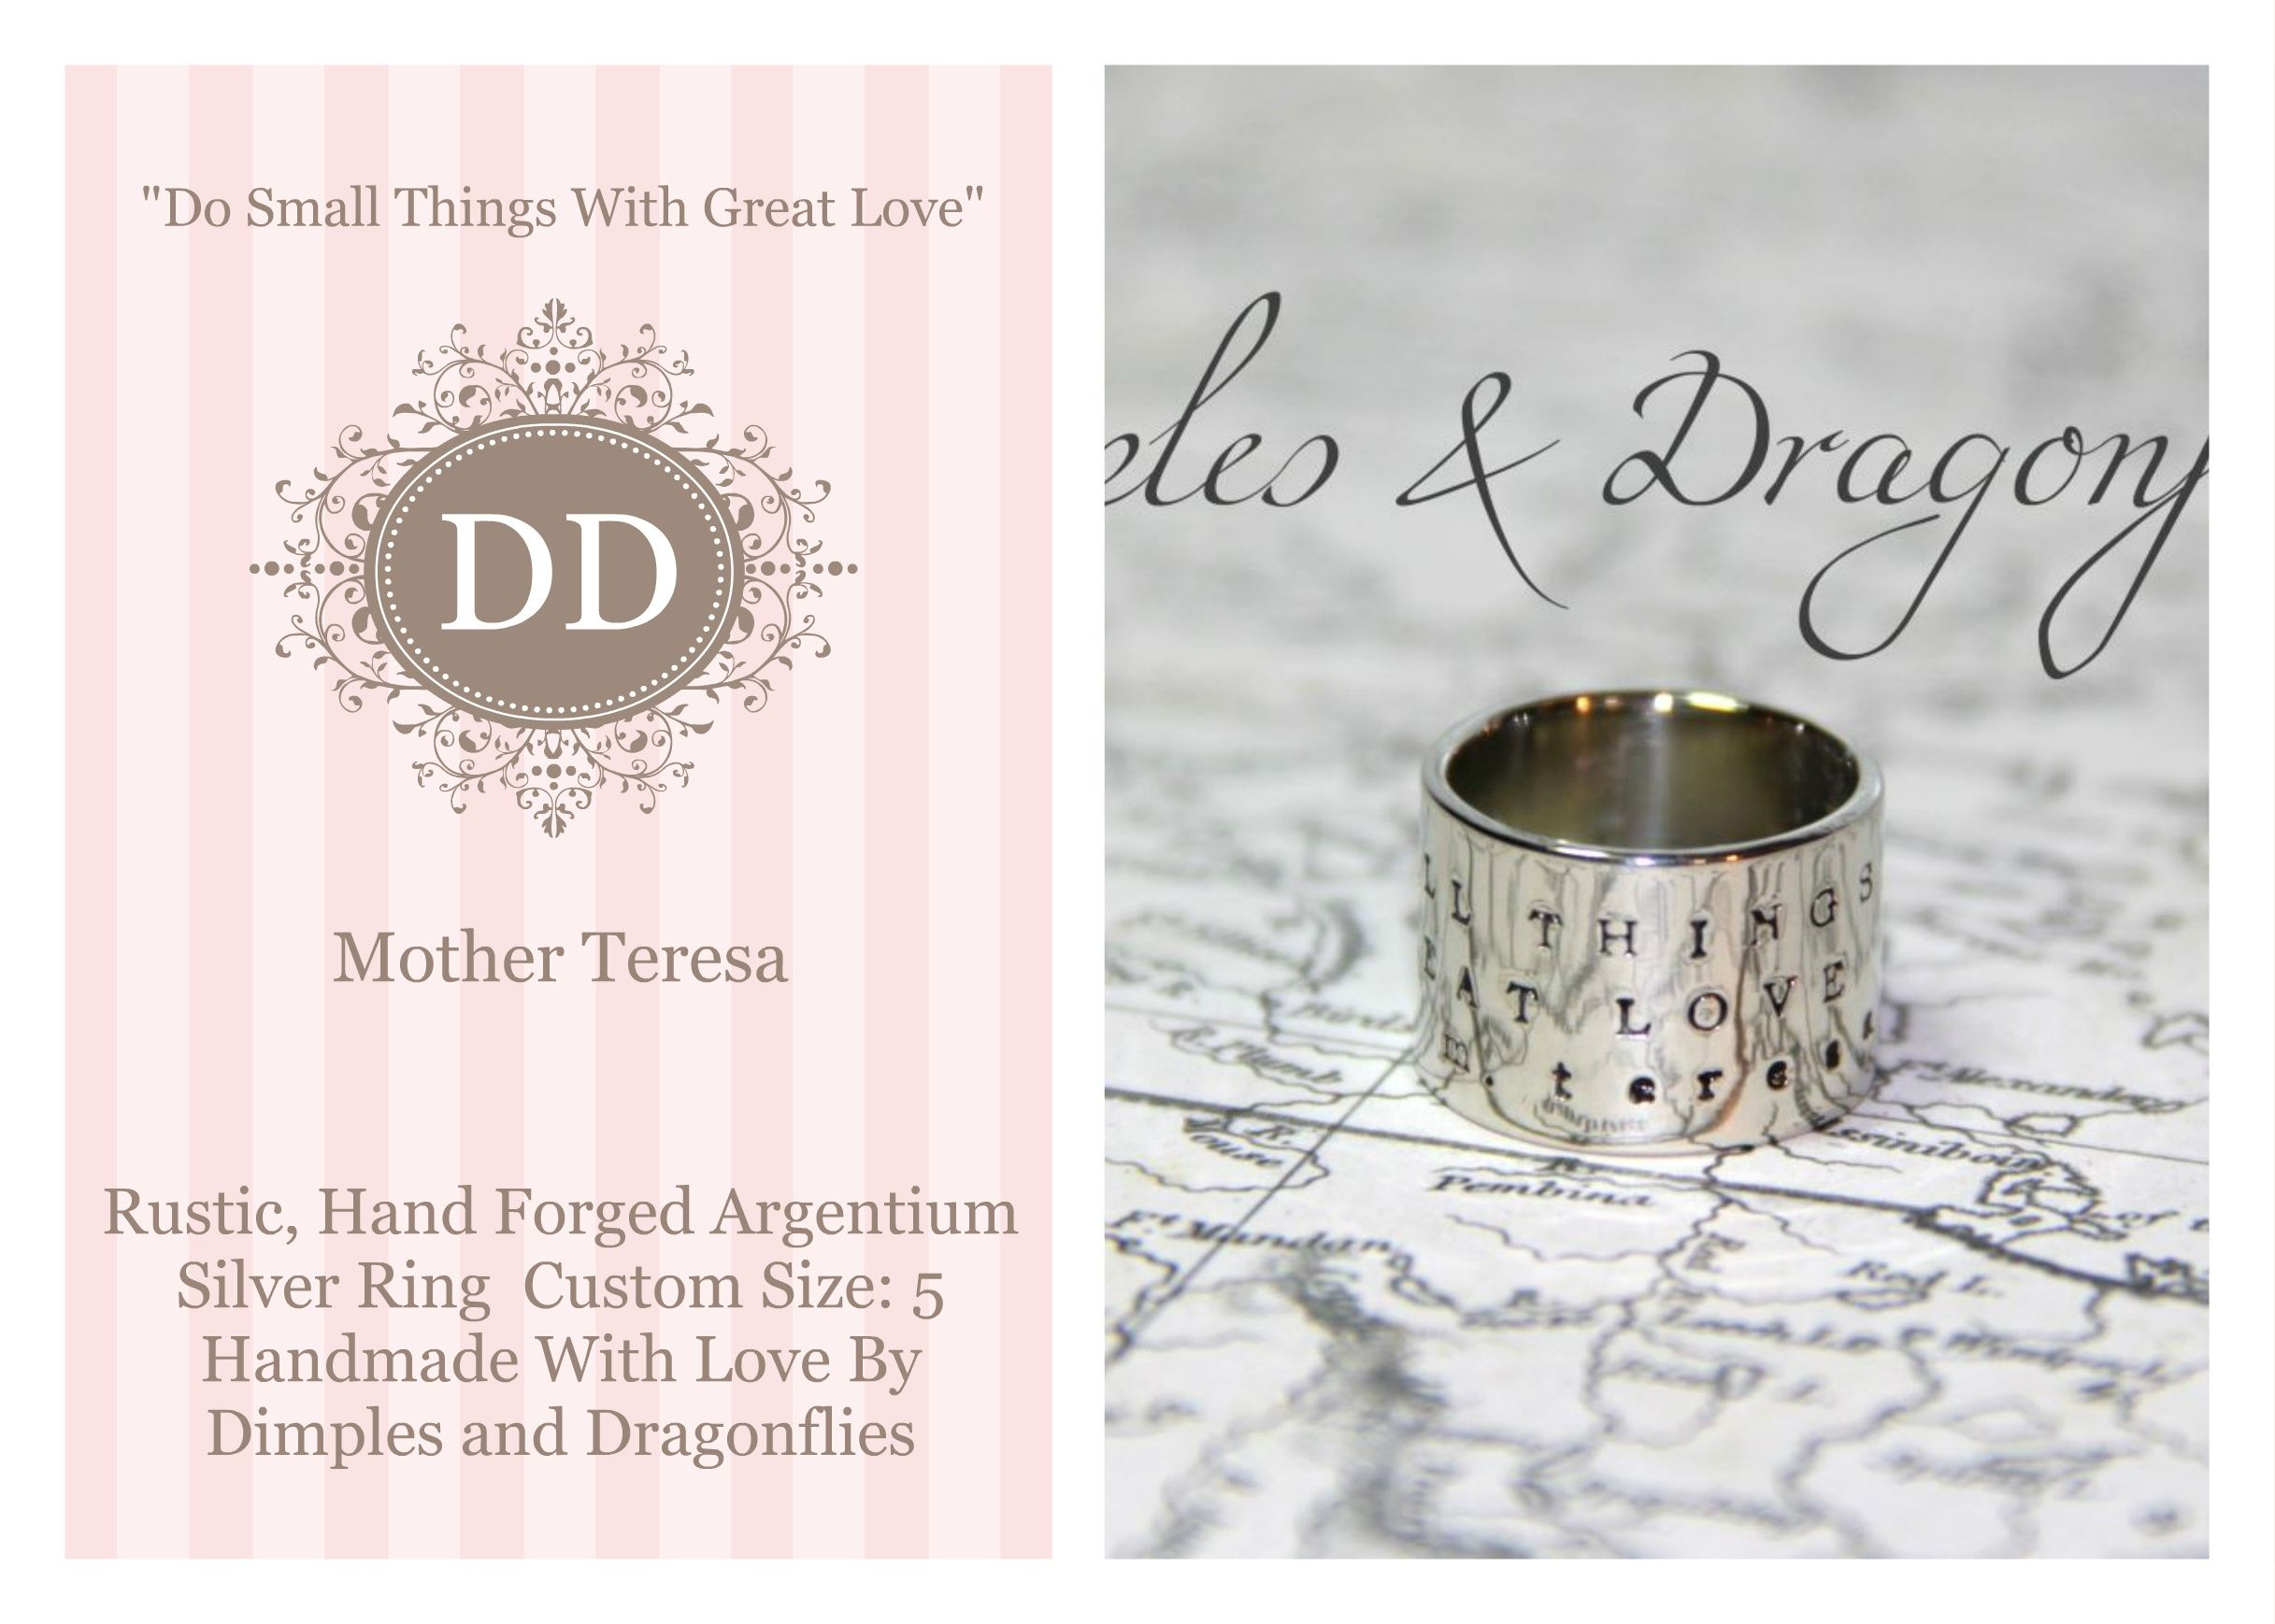 Rustic Hand Forged Silver Ring With Mother Teresa Quote by Dimples and Dragonflies  https://www.etsy.com/listing/189908249/ring-wide-band-rustic-hand-forged-hand?ref=shop_home_active_1